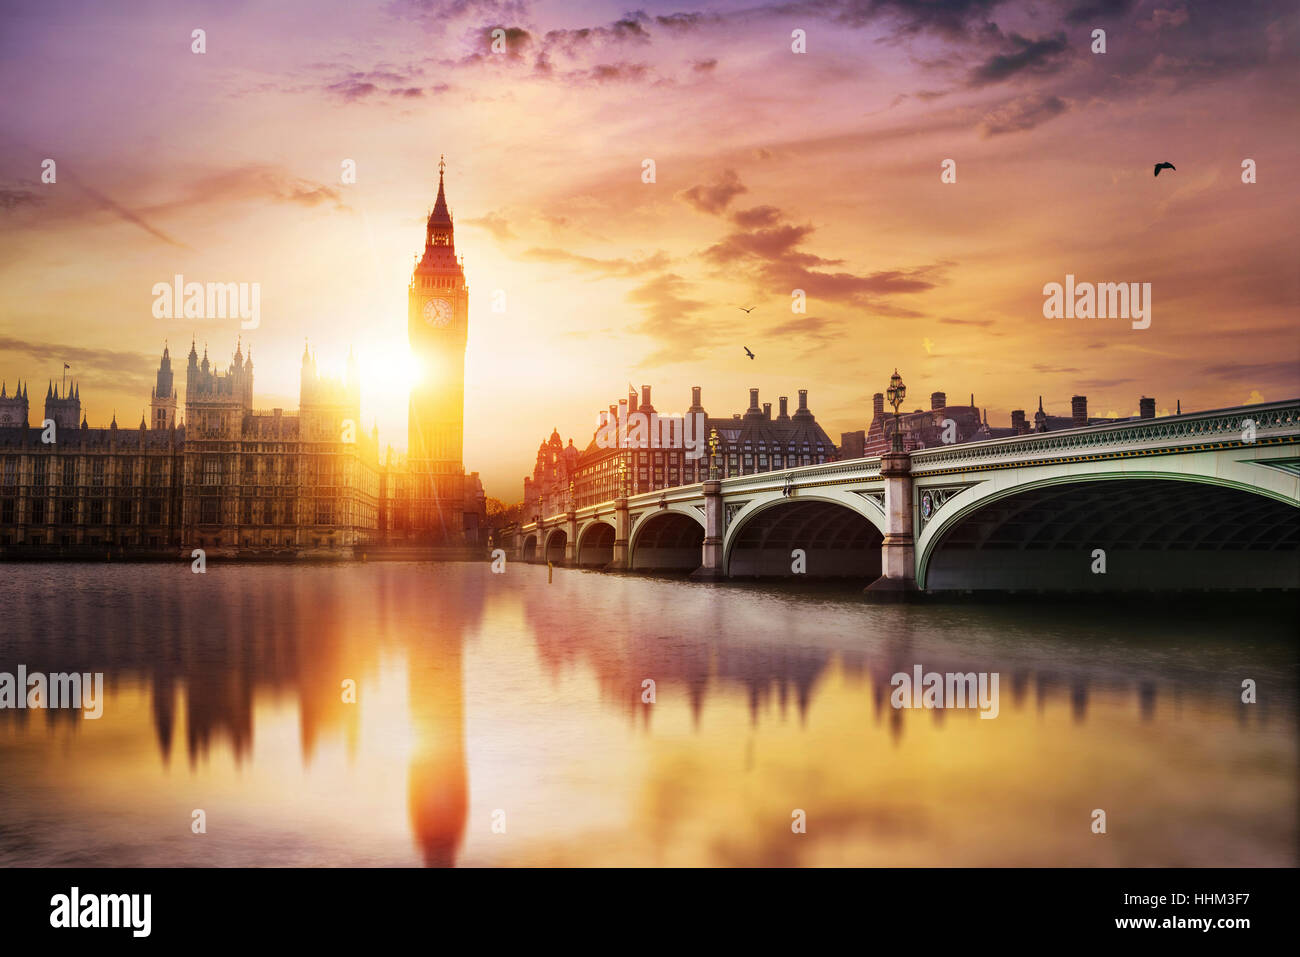 Big Ben and Westminster Bridge at dusk, London, UK - Stock Image